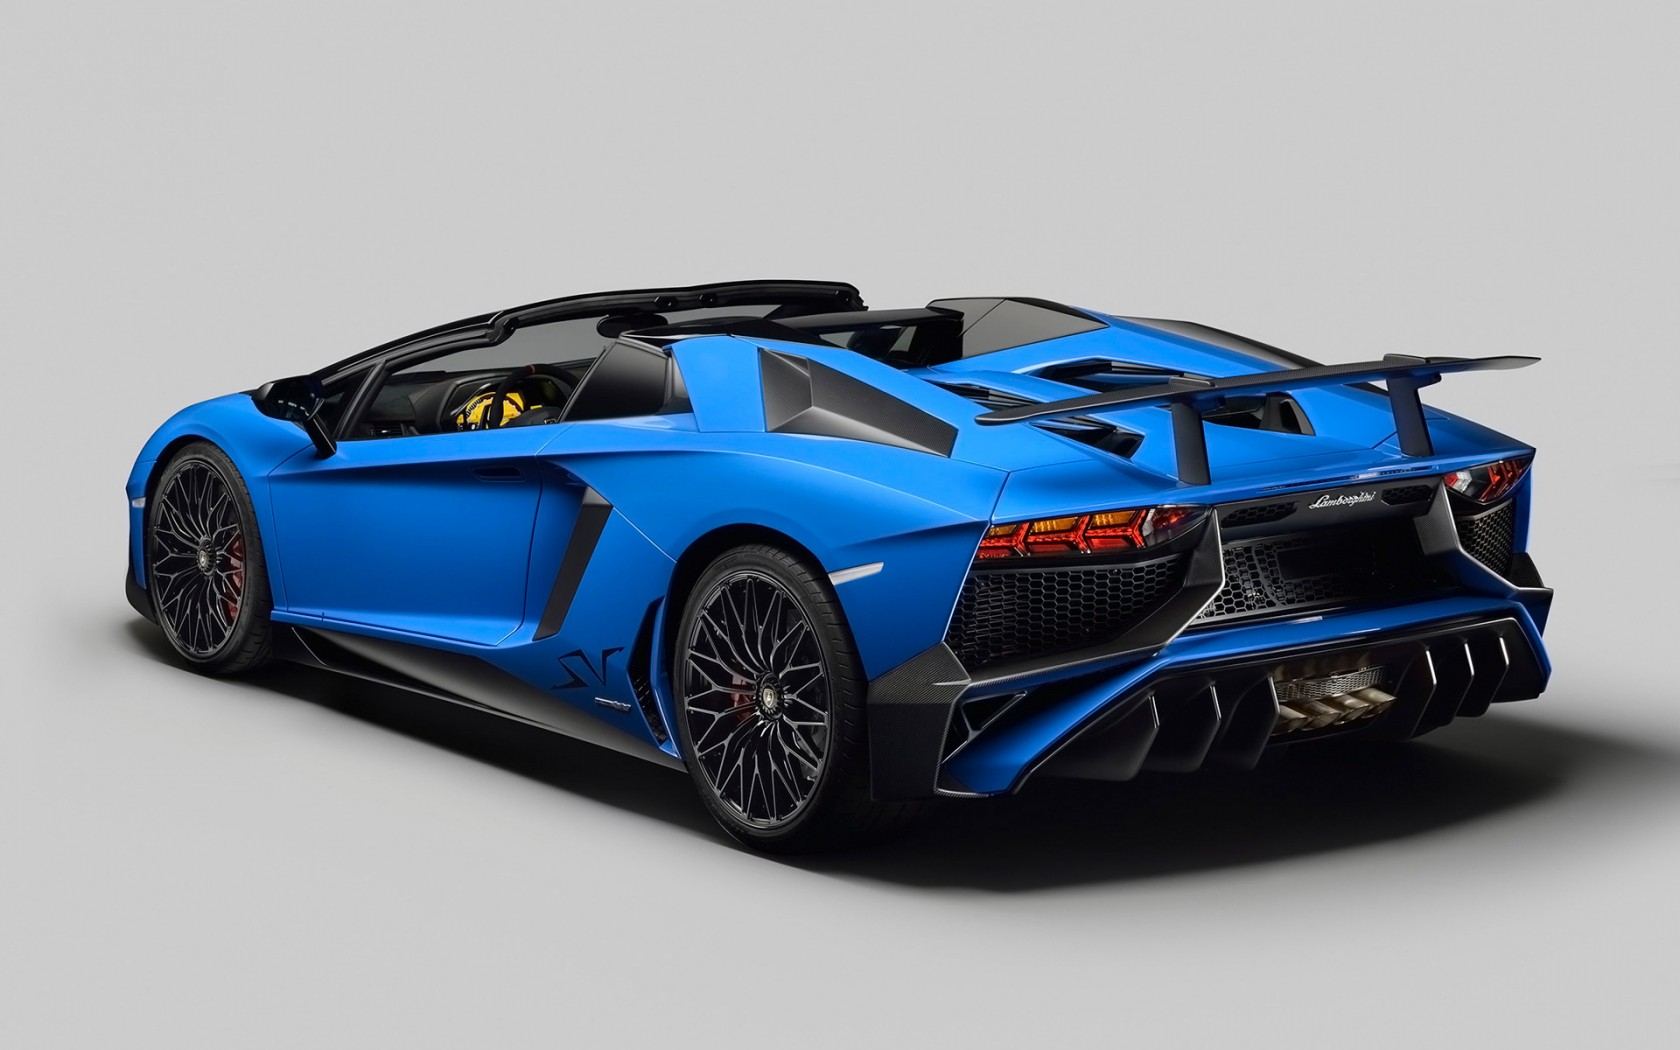 2016 Lamborghini Aventador LP750 4 SV Roadster 2 Wallpaper  HD Car